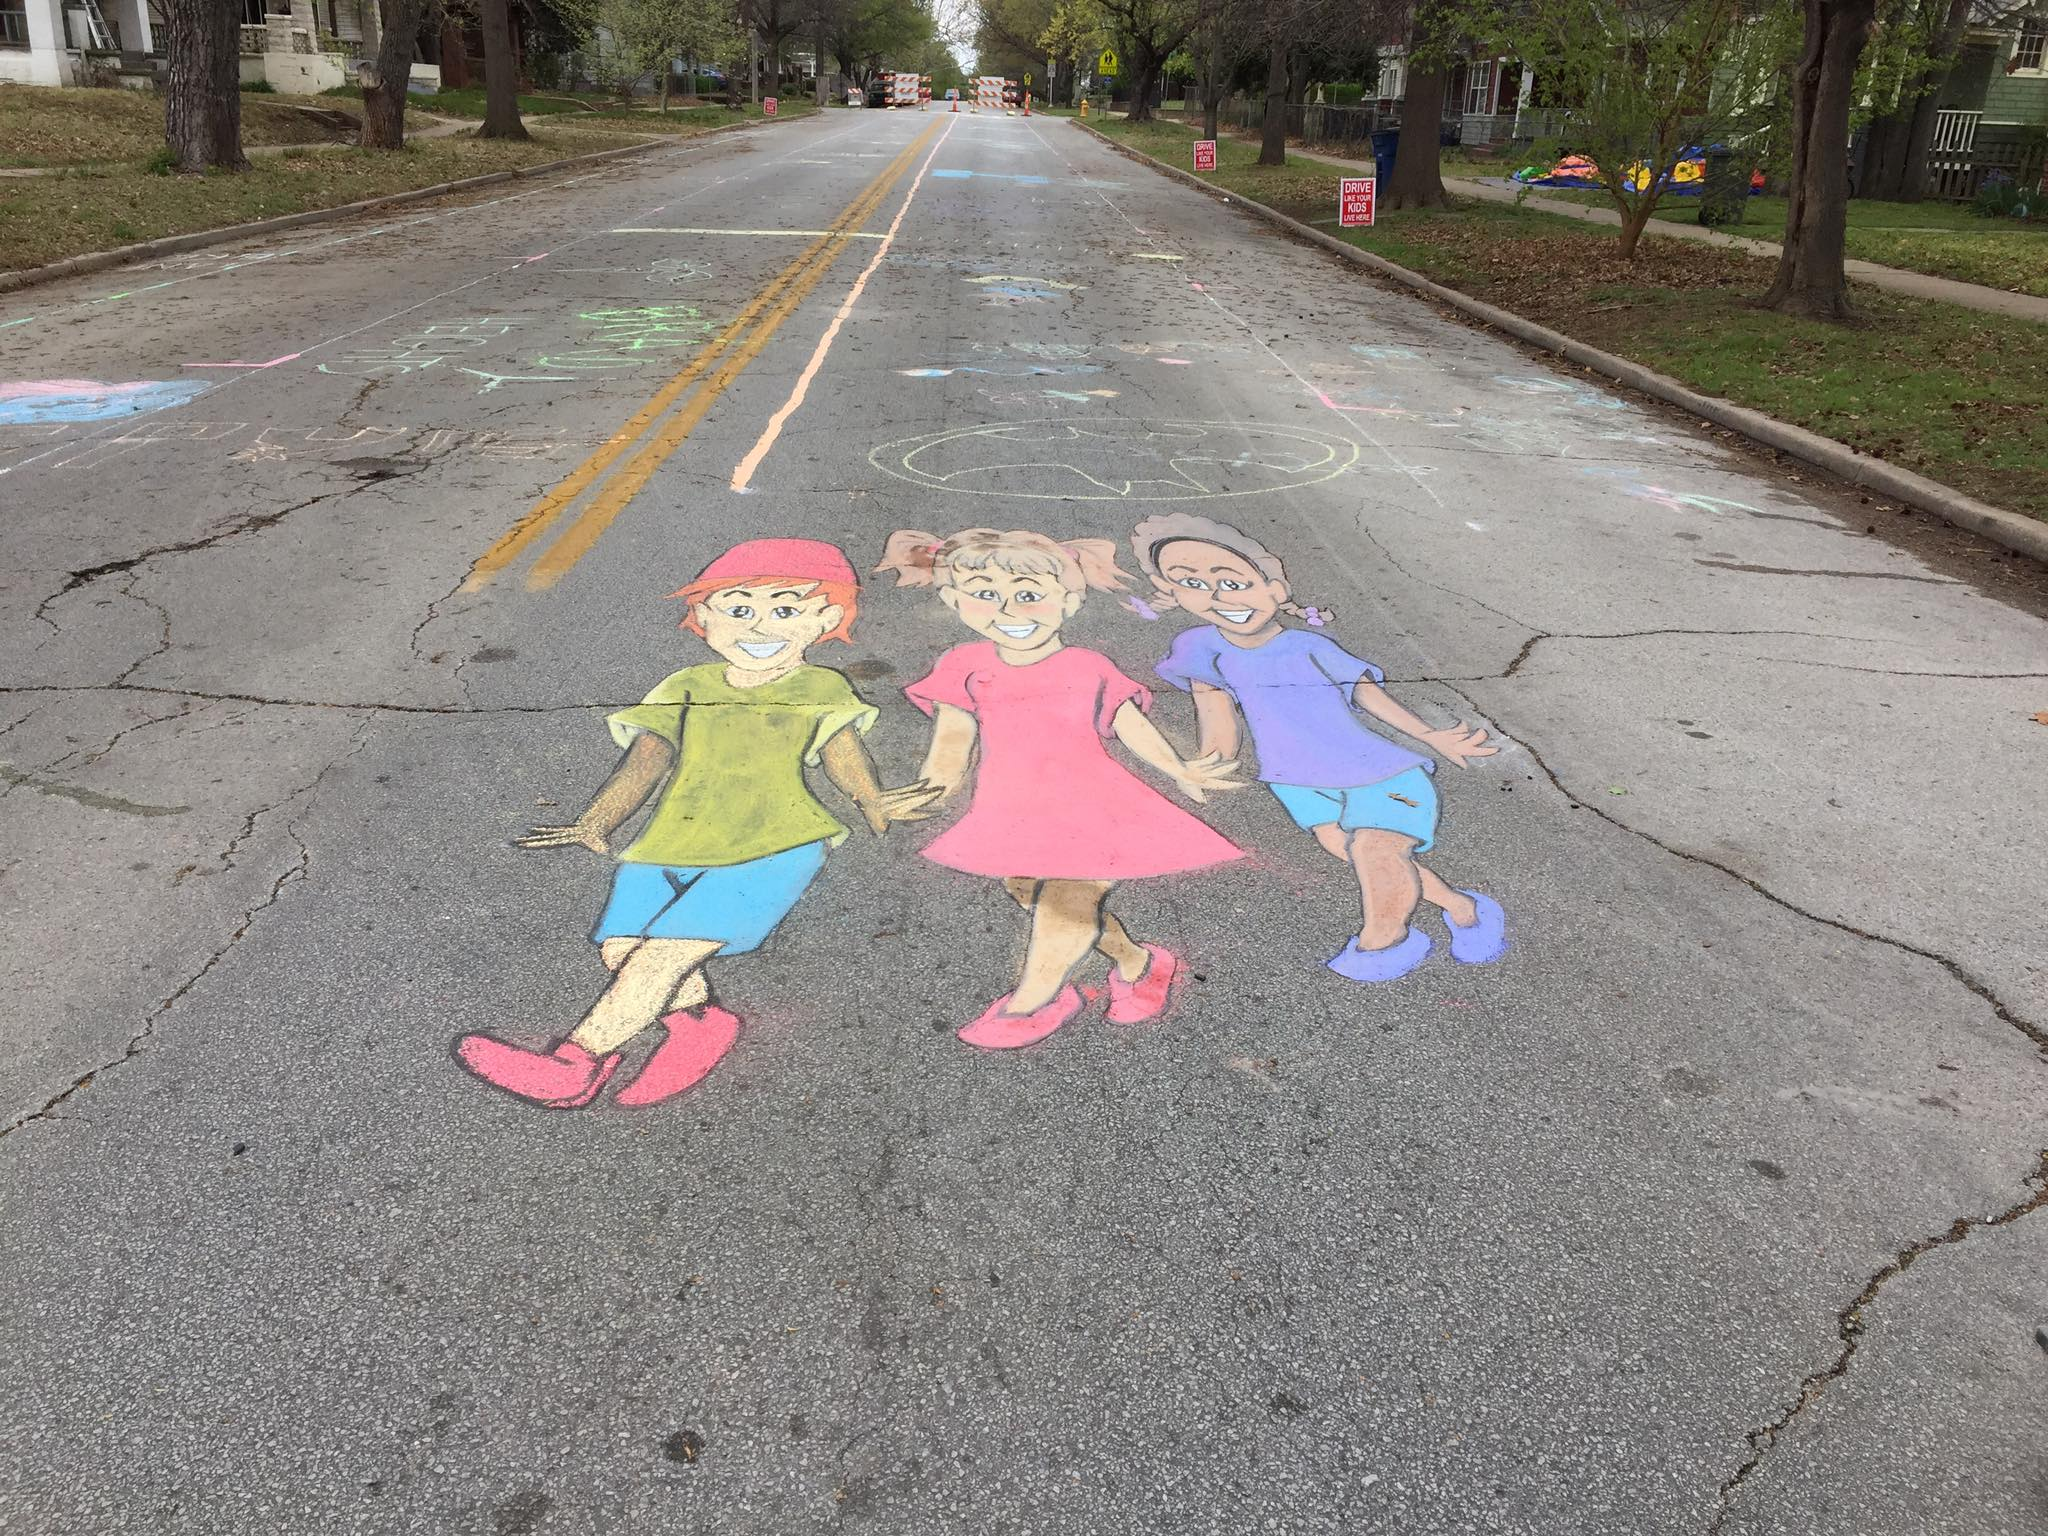 """The final product of the 3D crosswalk design created by chalk artist Amber Crismond and completed during the """"Chalk the Walk"""" event. (Photo © 2017 Brian Parker)"""